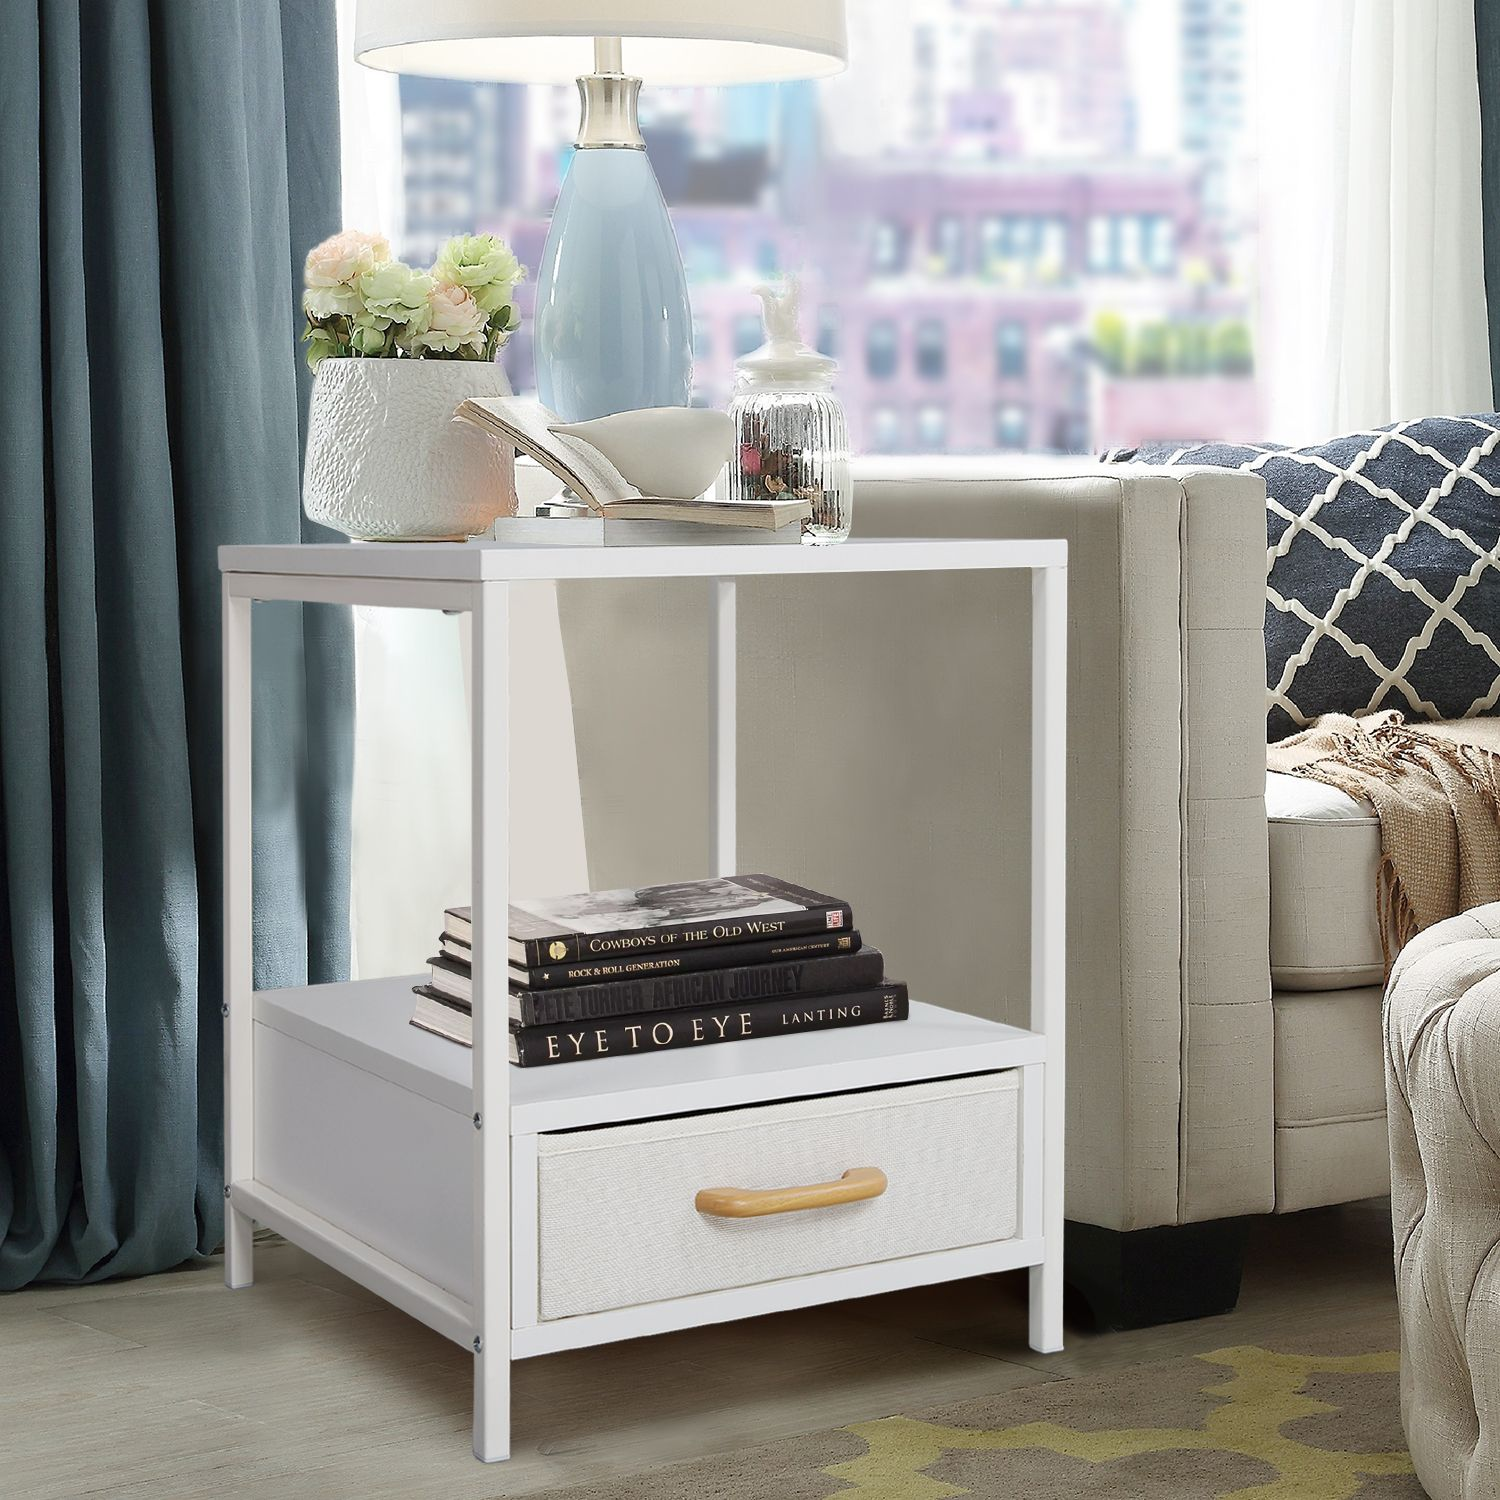 Lifewit Square Side Nightstand Elegant End Table Coffee